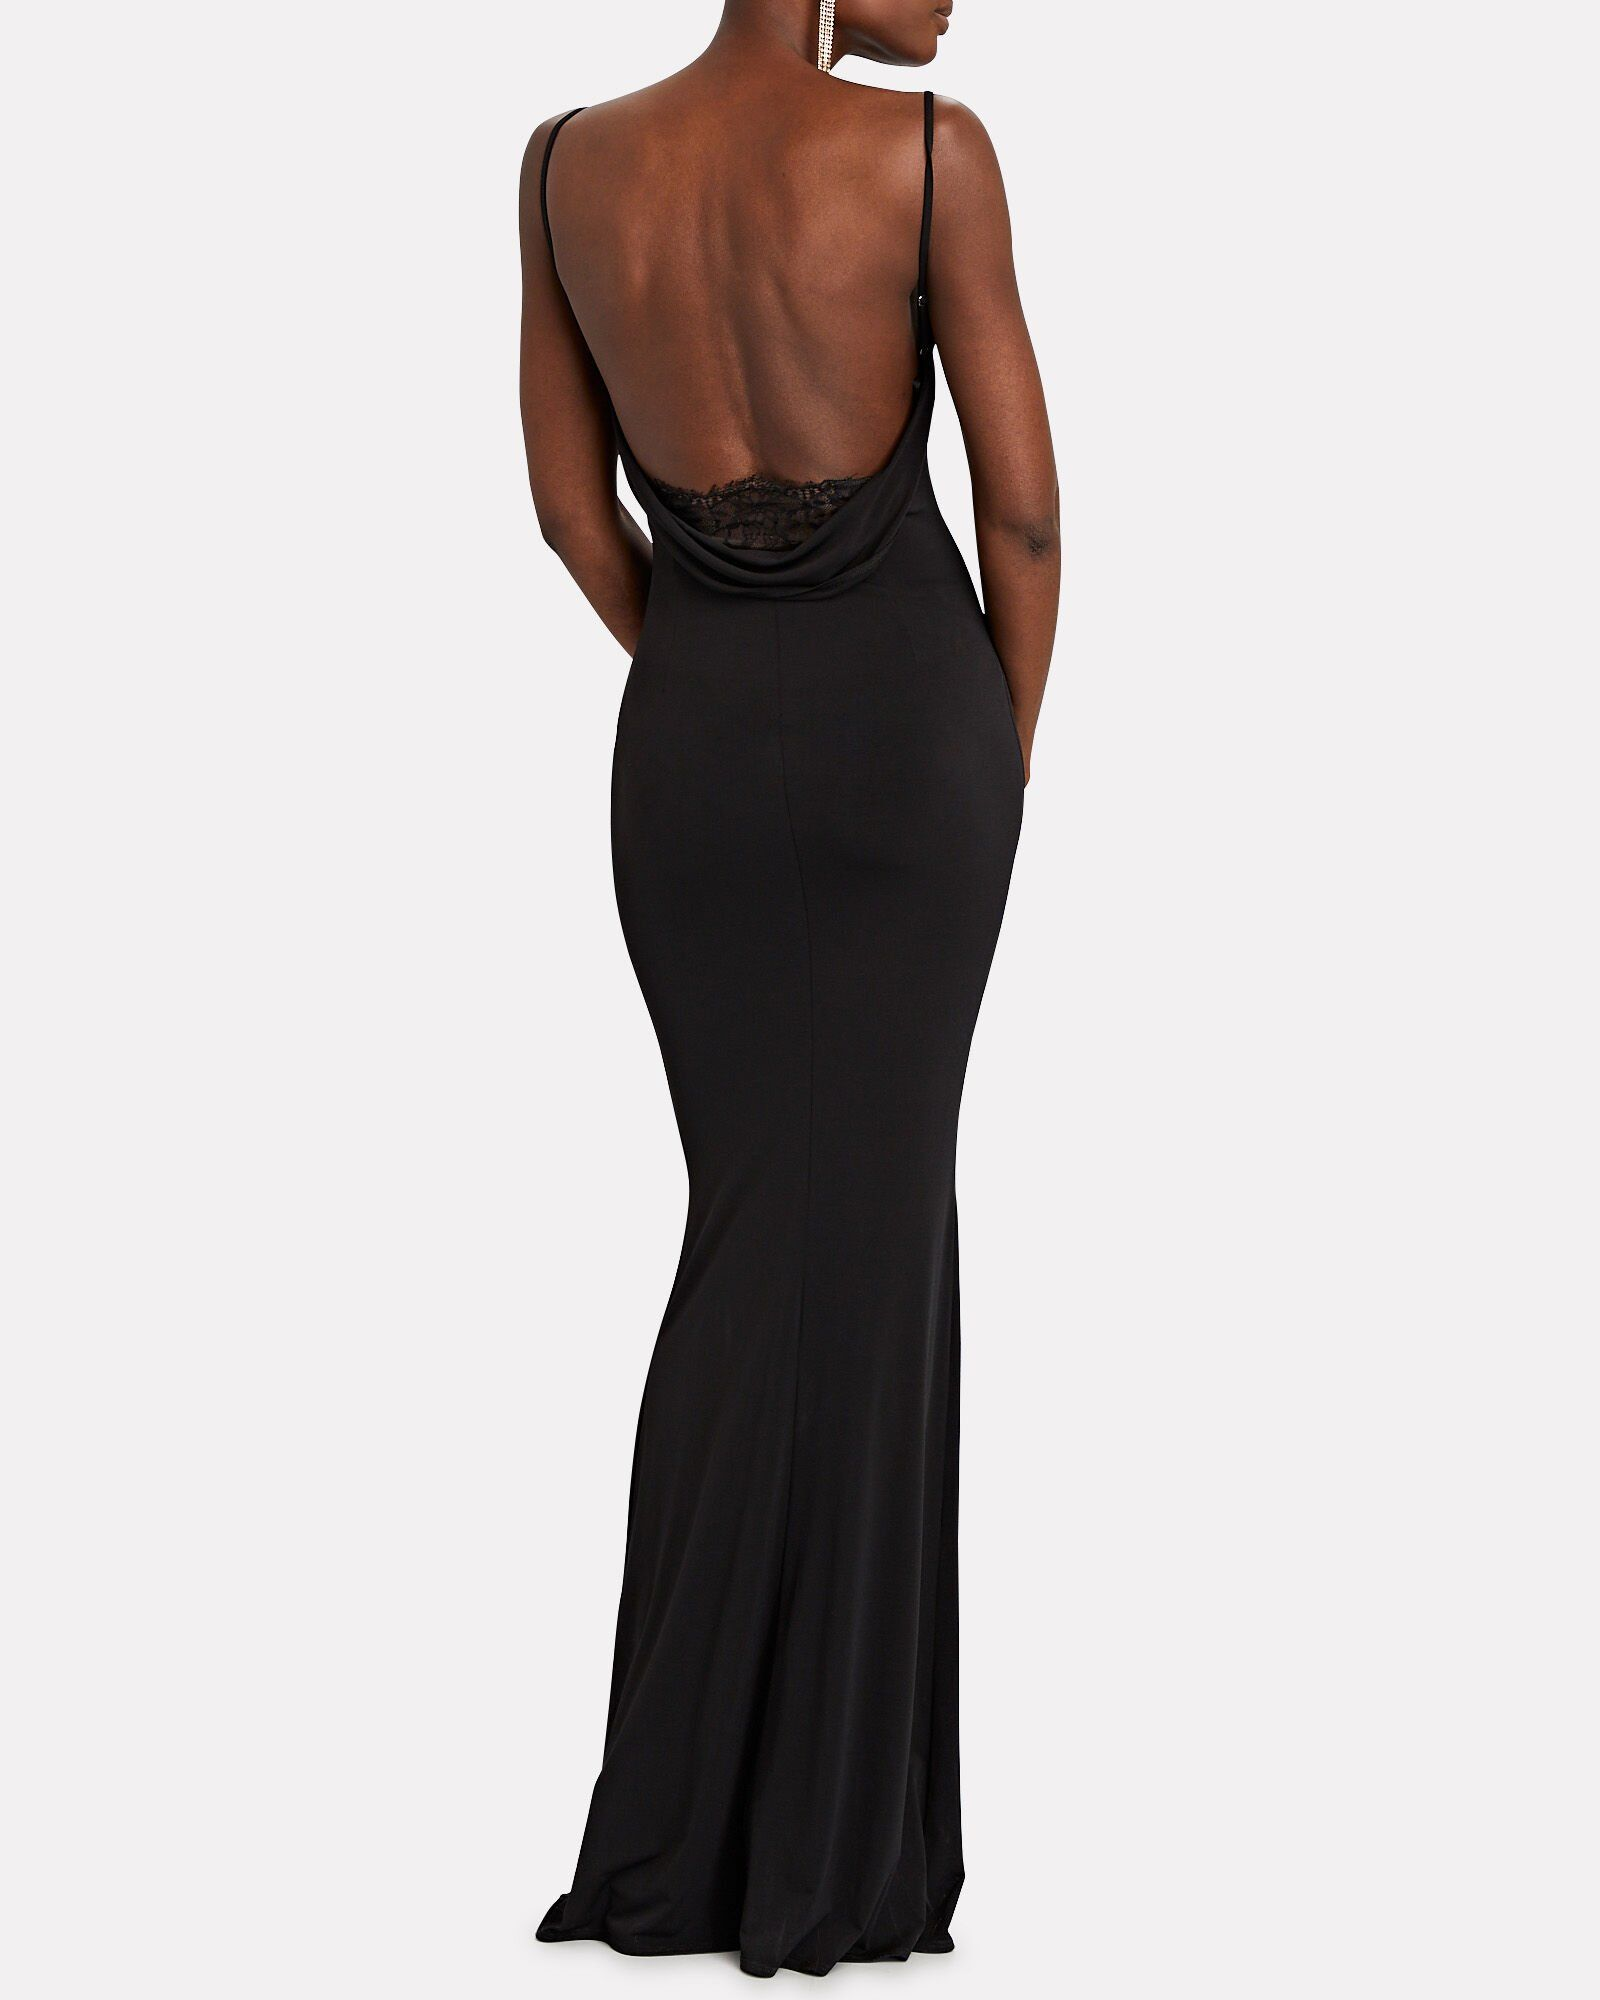 Surreal Open Back Gown In 2020 Open Back Gown Black Evening Gown Backless Gown